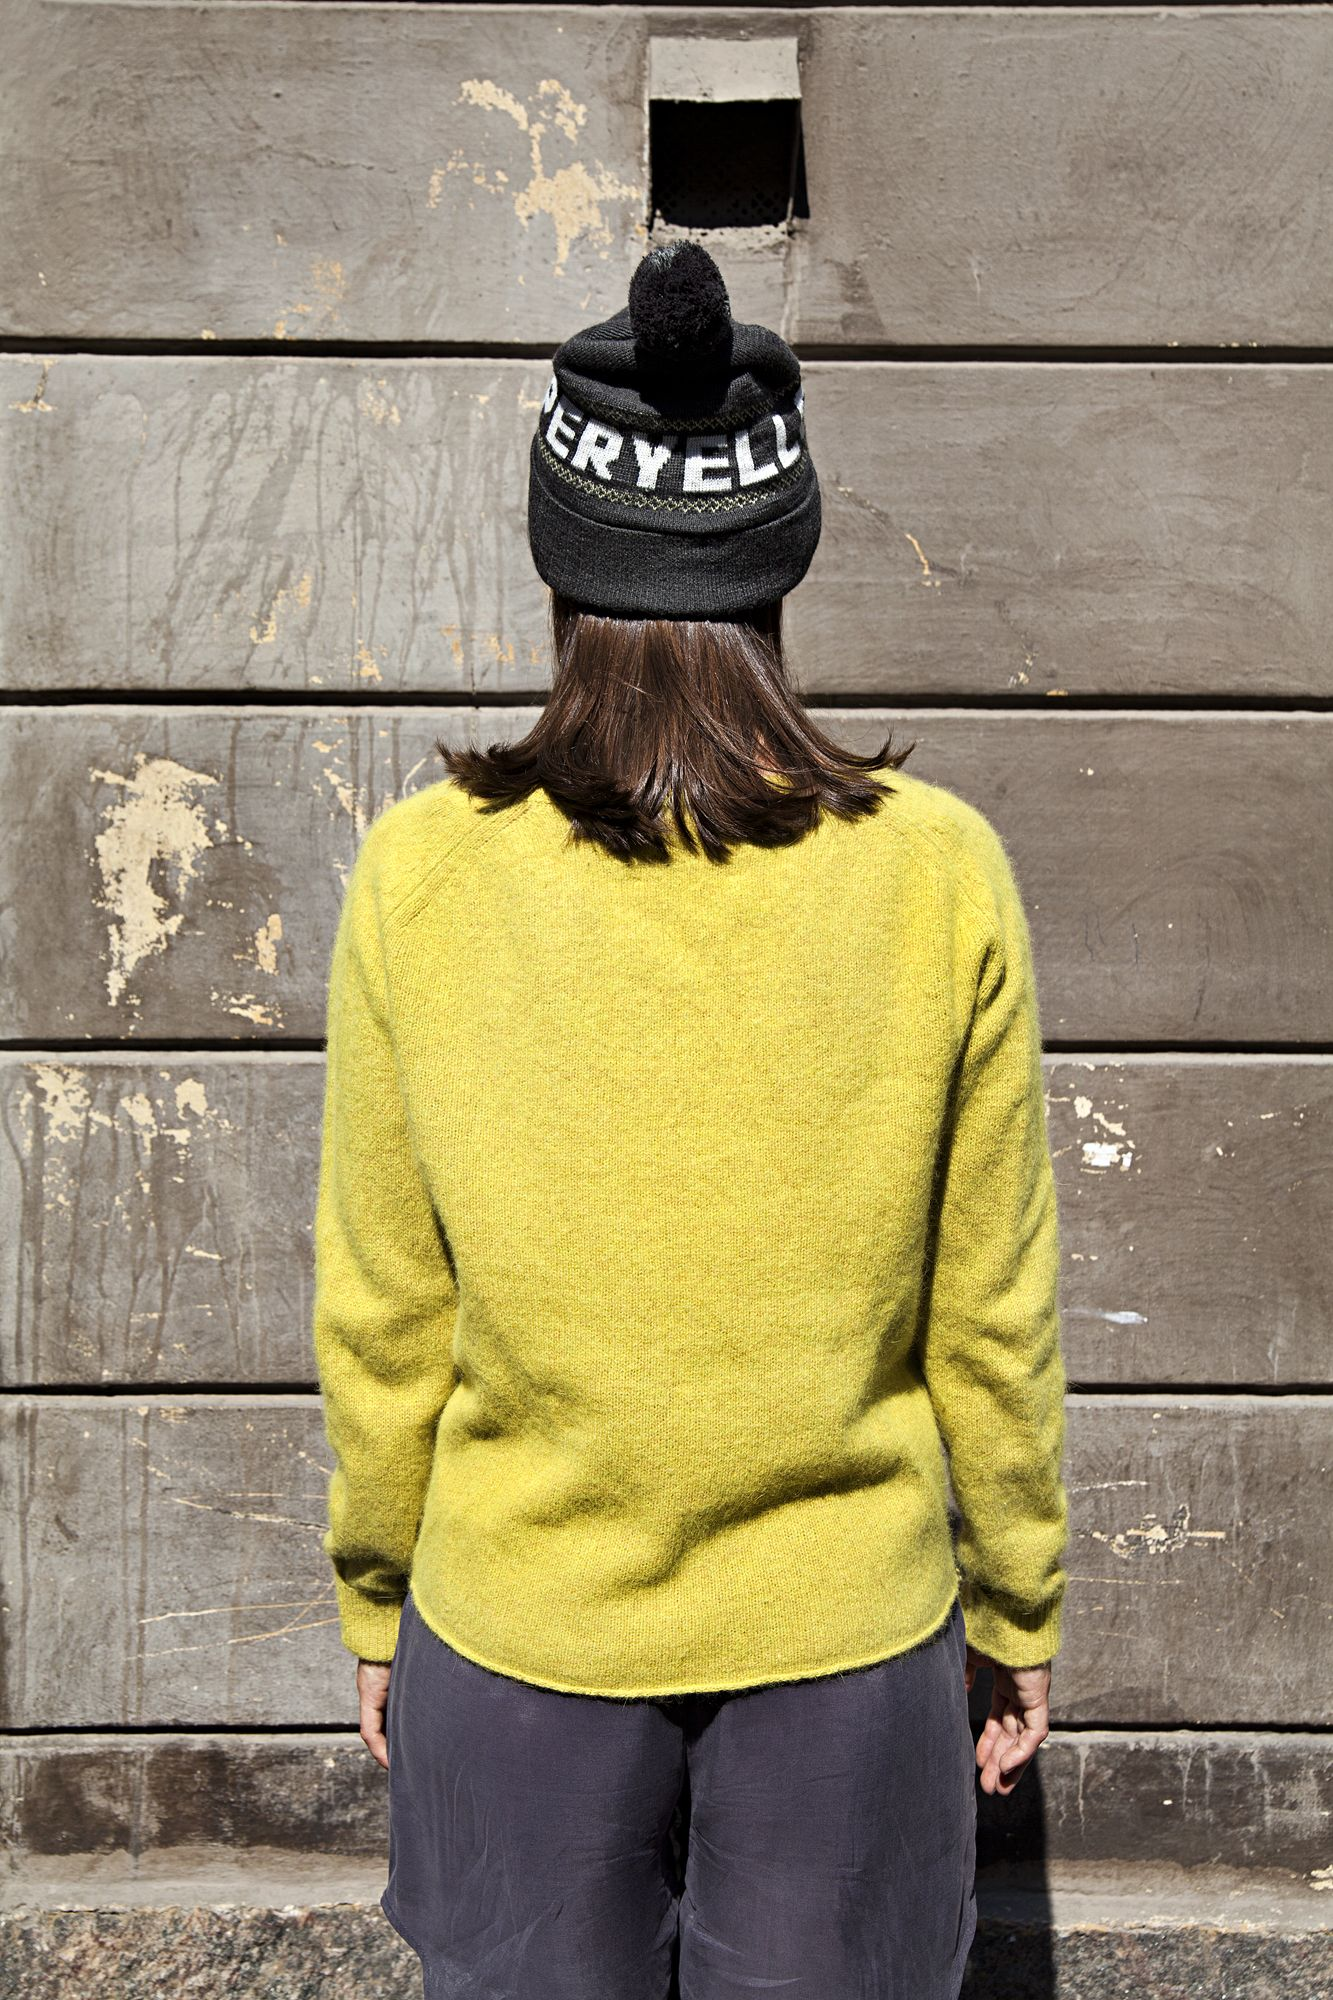 d6366b568dc Get your beanie for the urban city look. shop.superyellow.fi